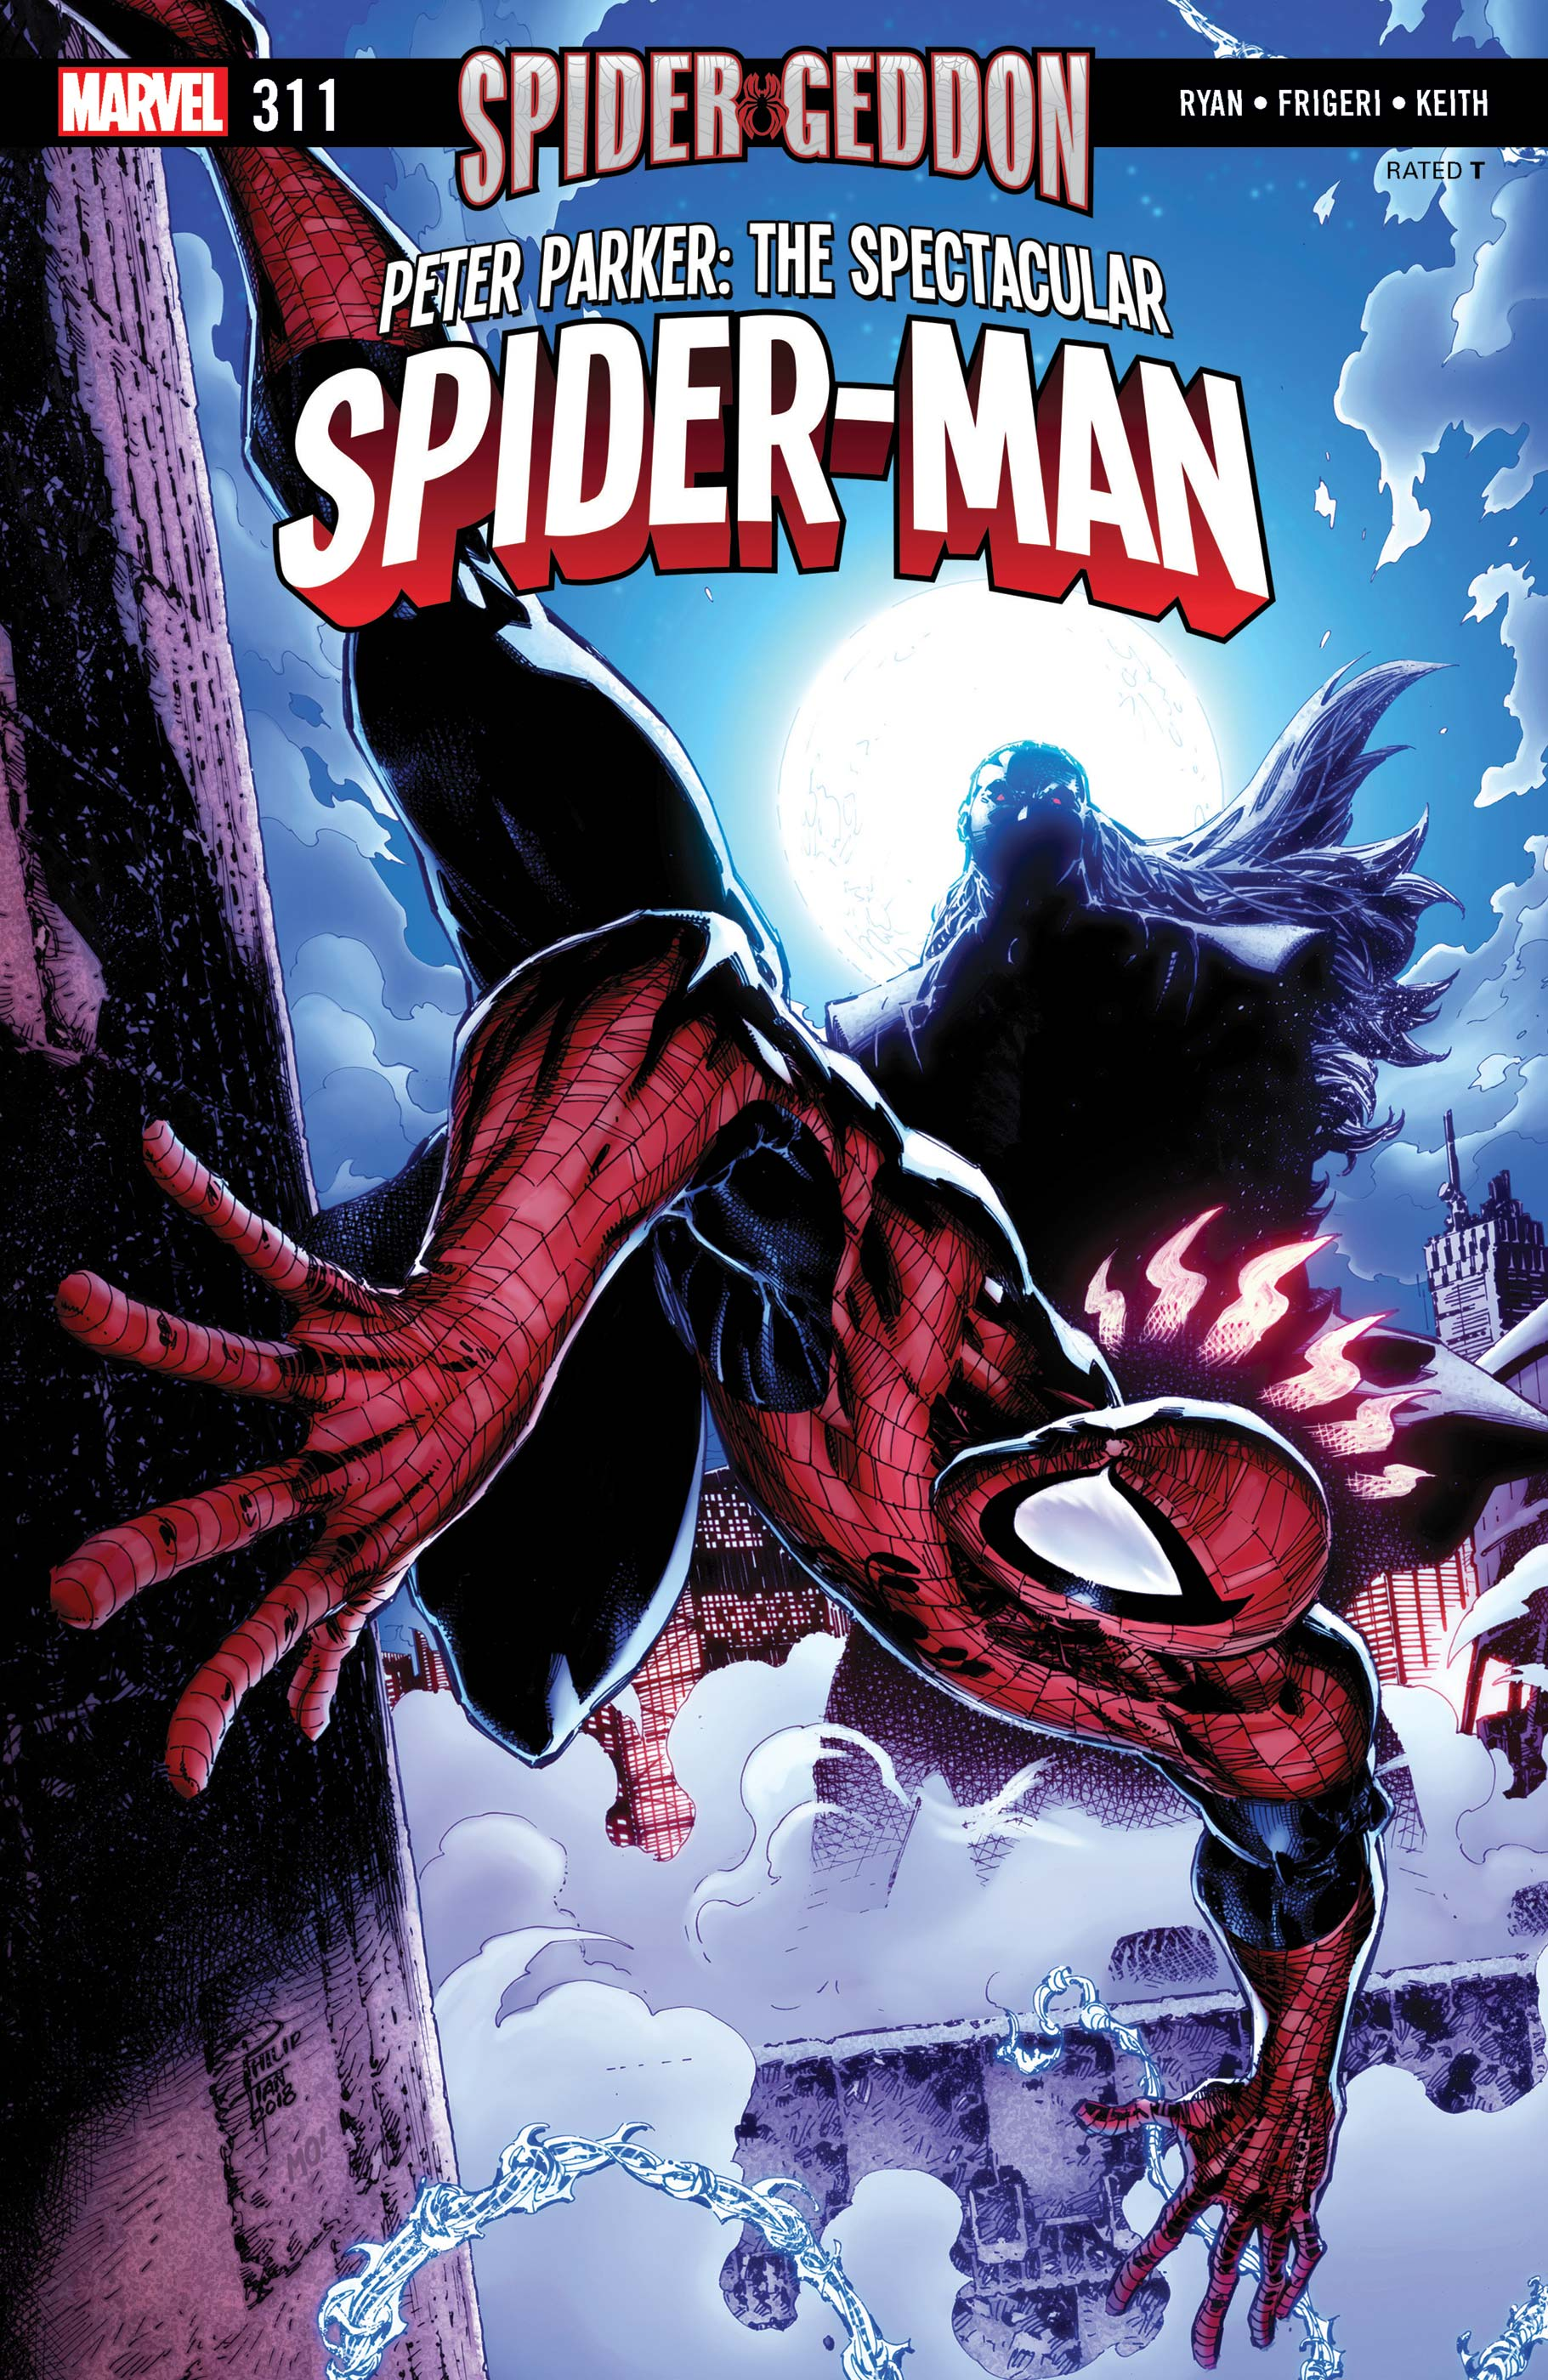 Peter Parker: The Spectacular Spider-Man (2017) #311